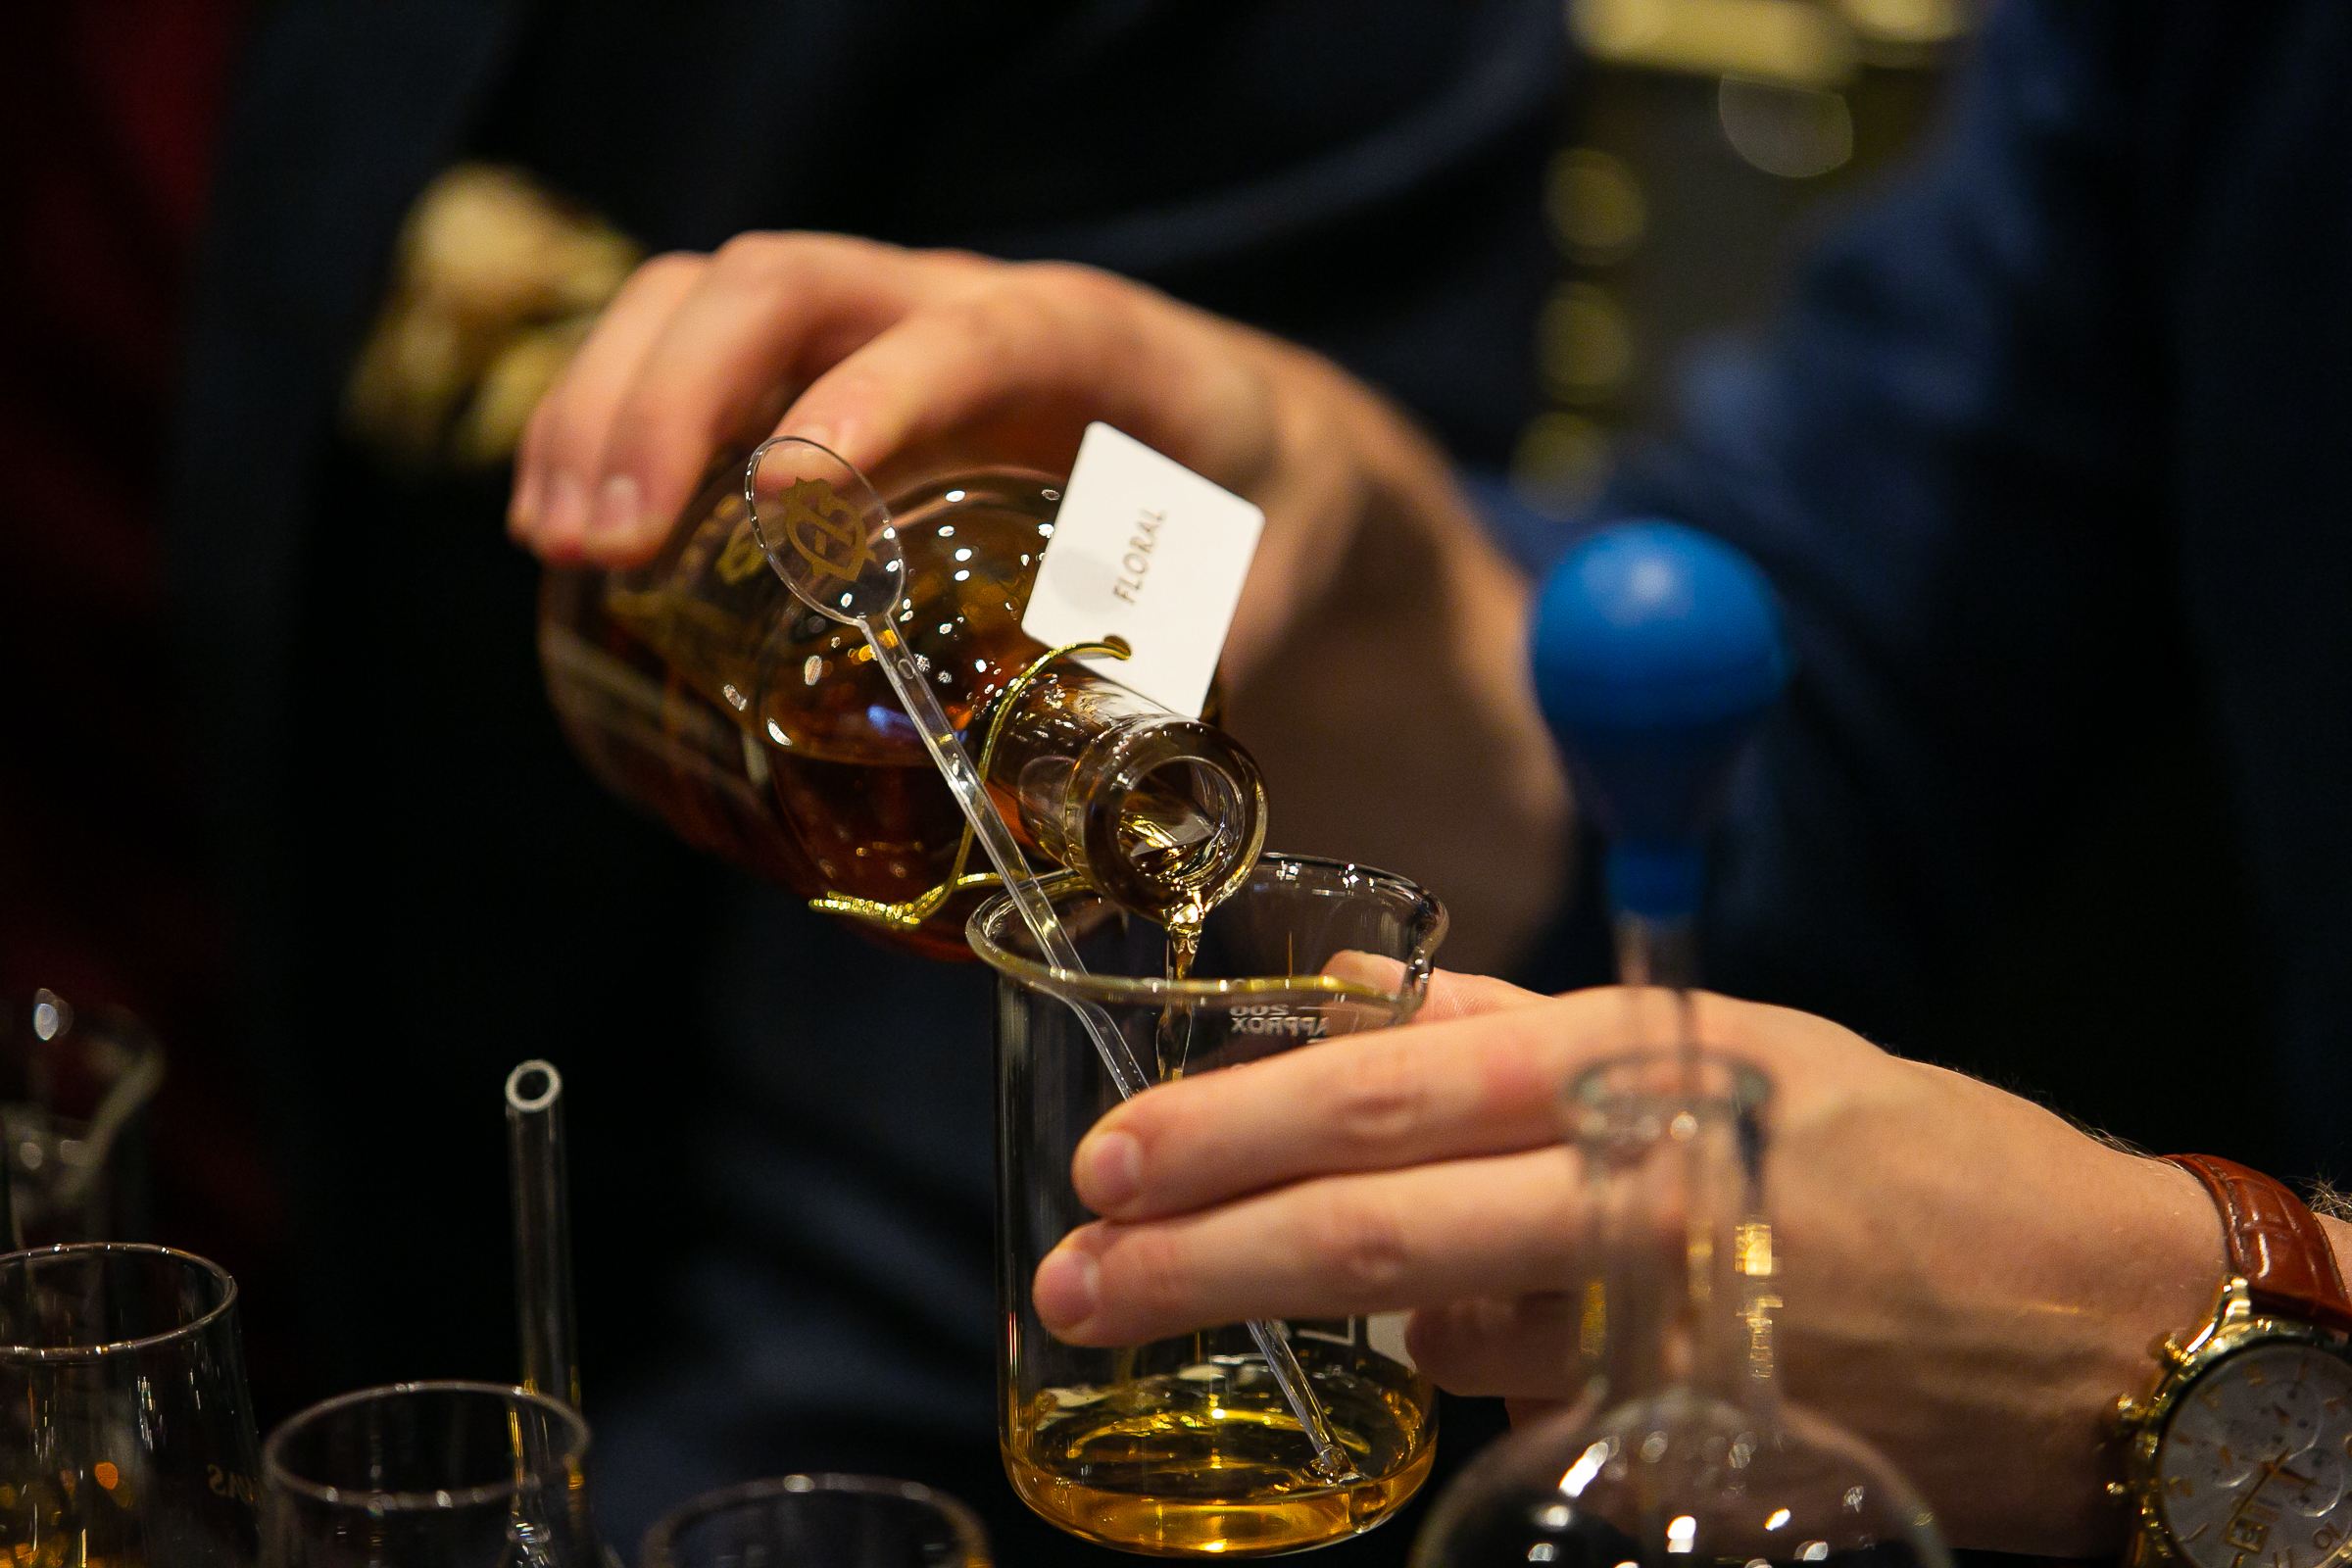 A workshop participant carefully blends his own whisky